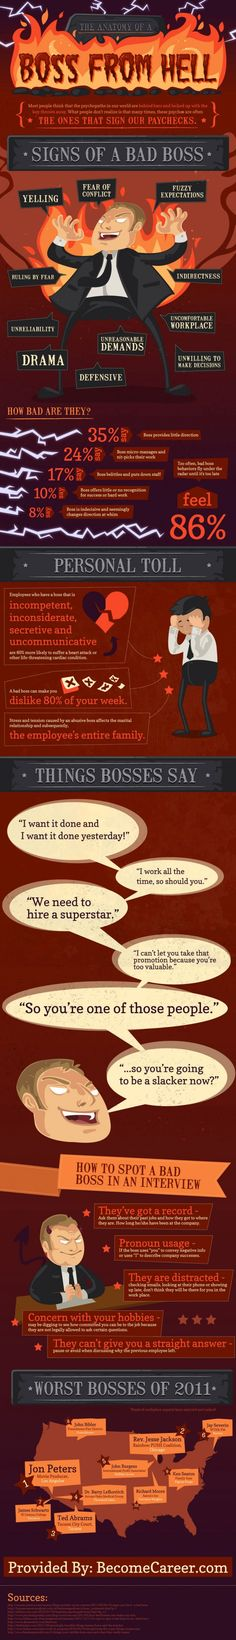 How to Spot a Boss From Hell